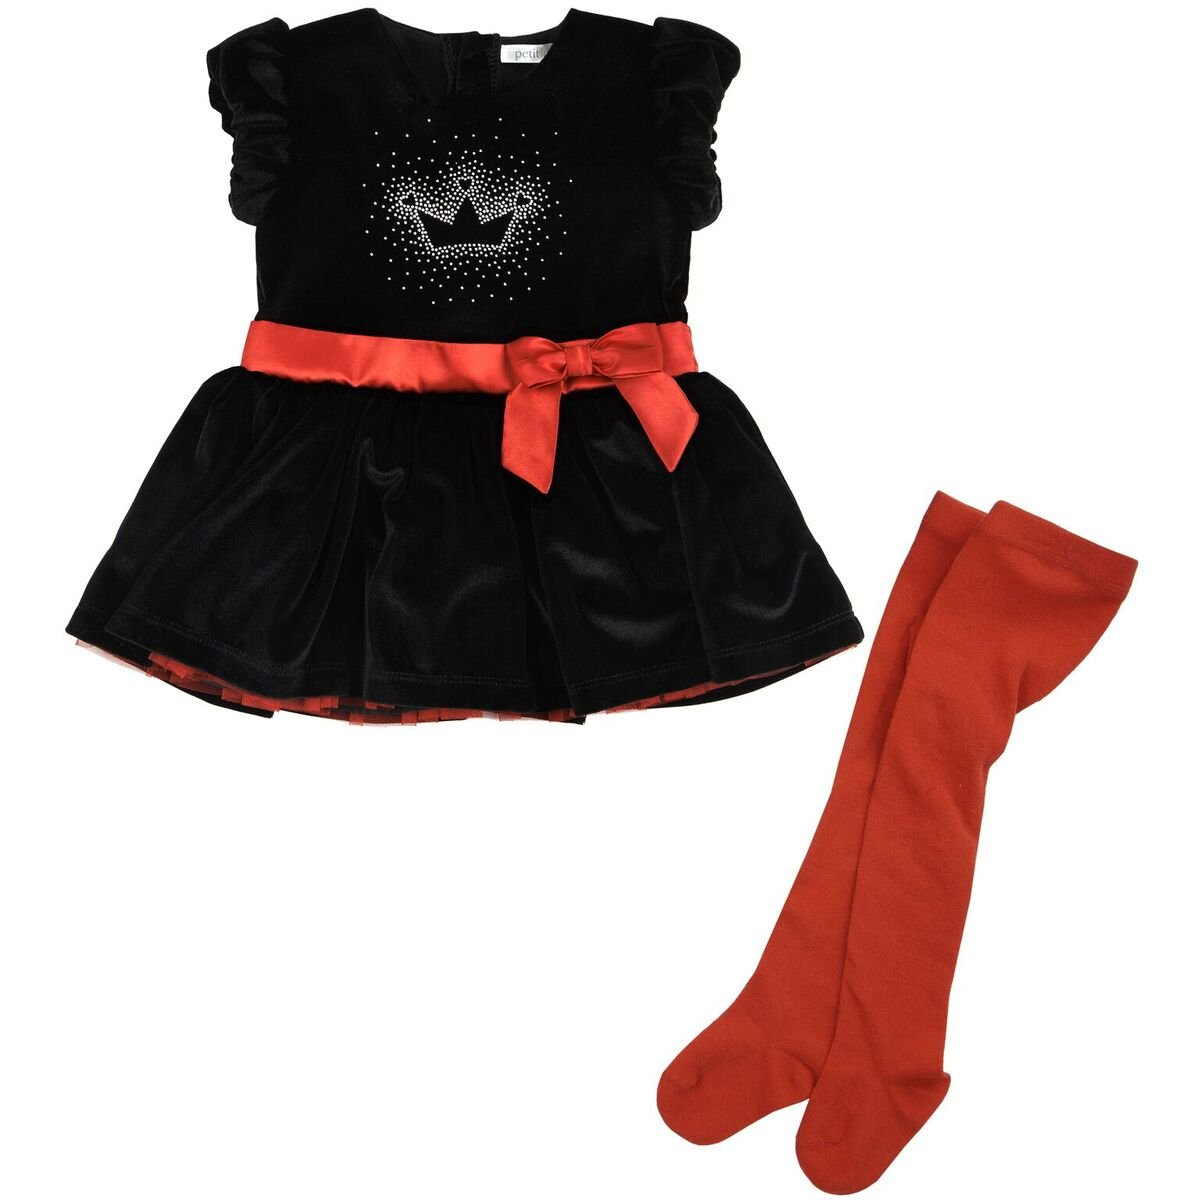 Petit Lem Girls' Baby Holiday Tiara Print and Ruffle Party Dress with a Bow Belt and Tights, 6 Months by Petit Lem